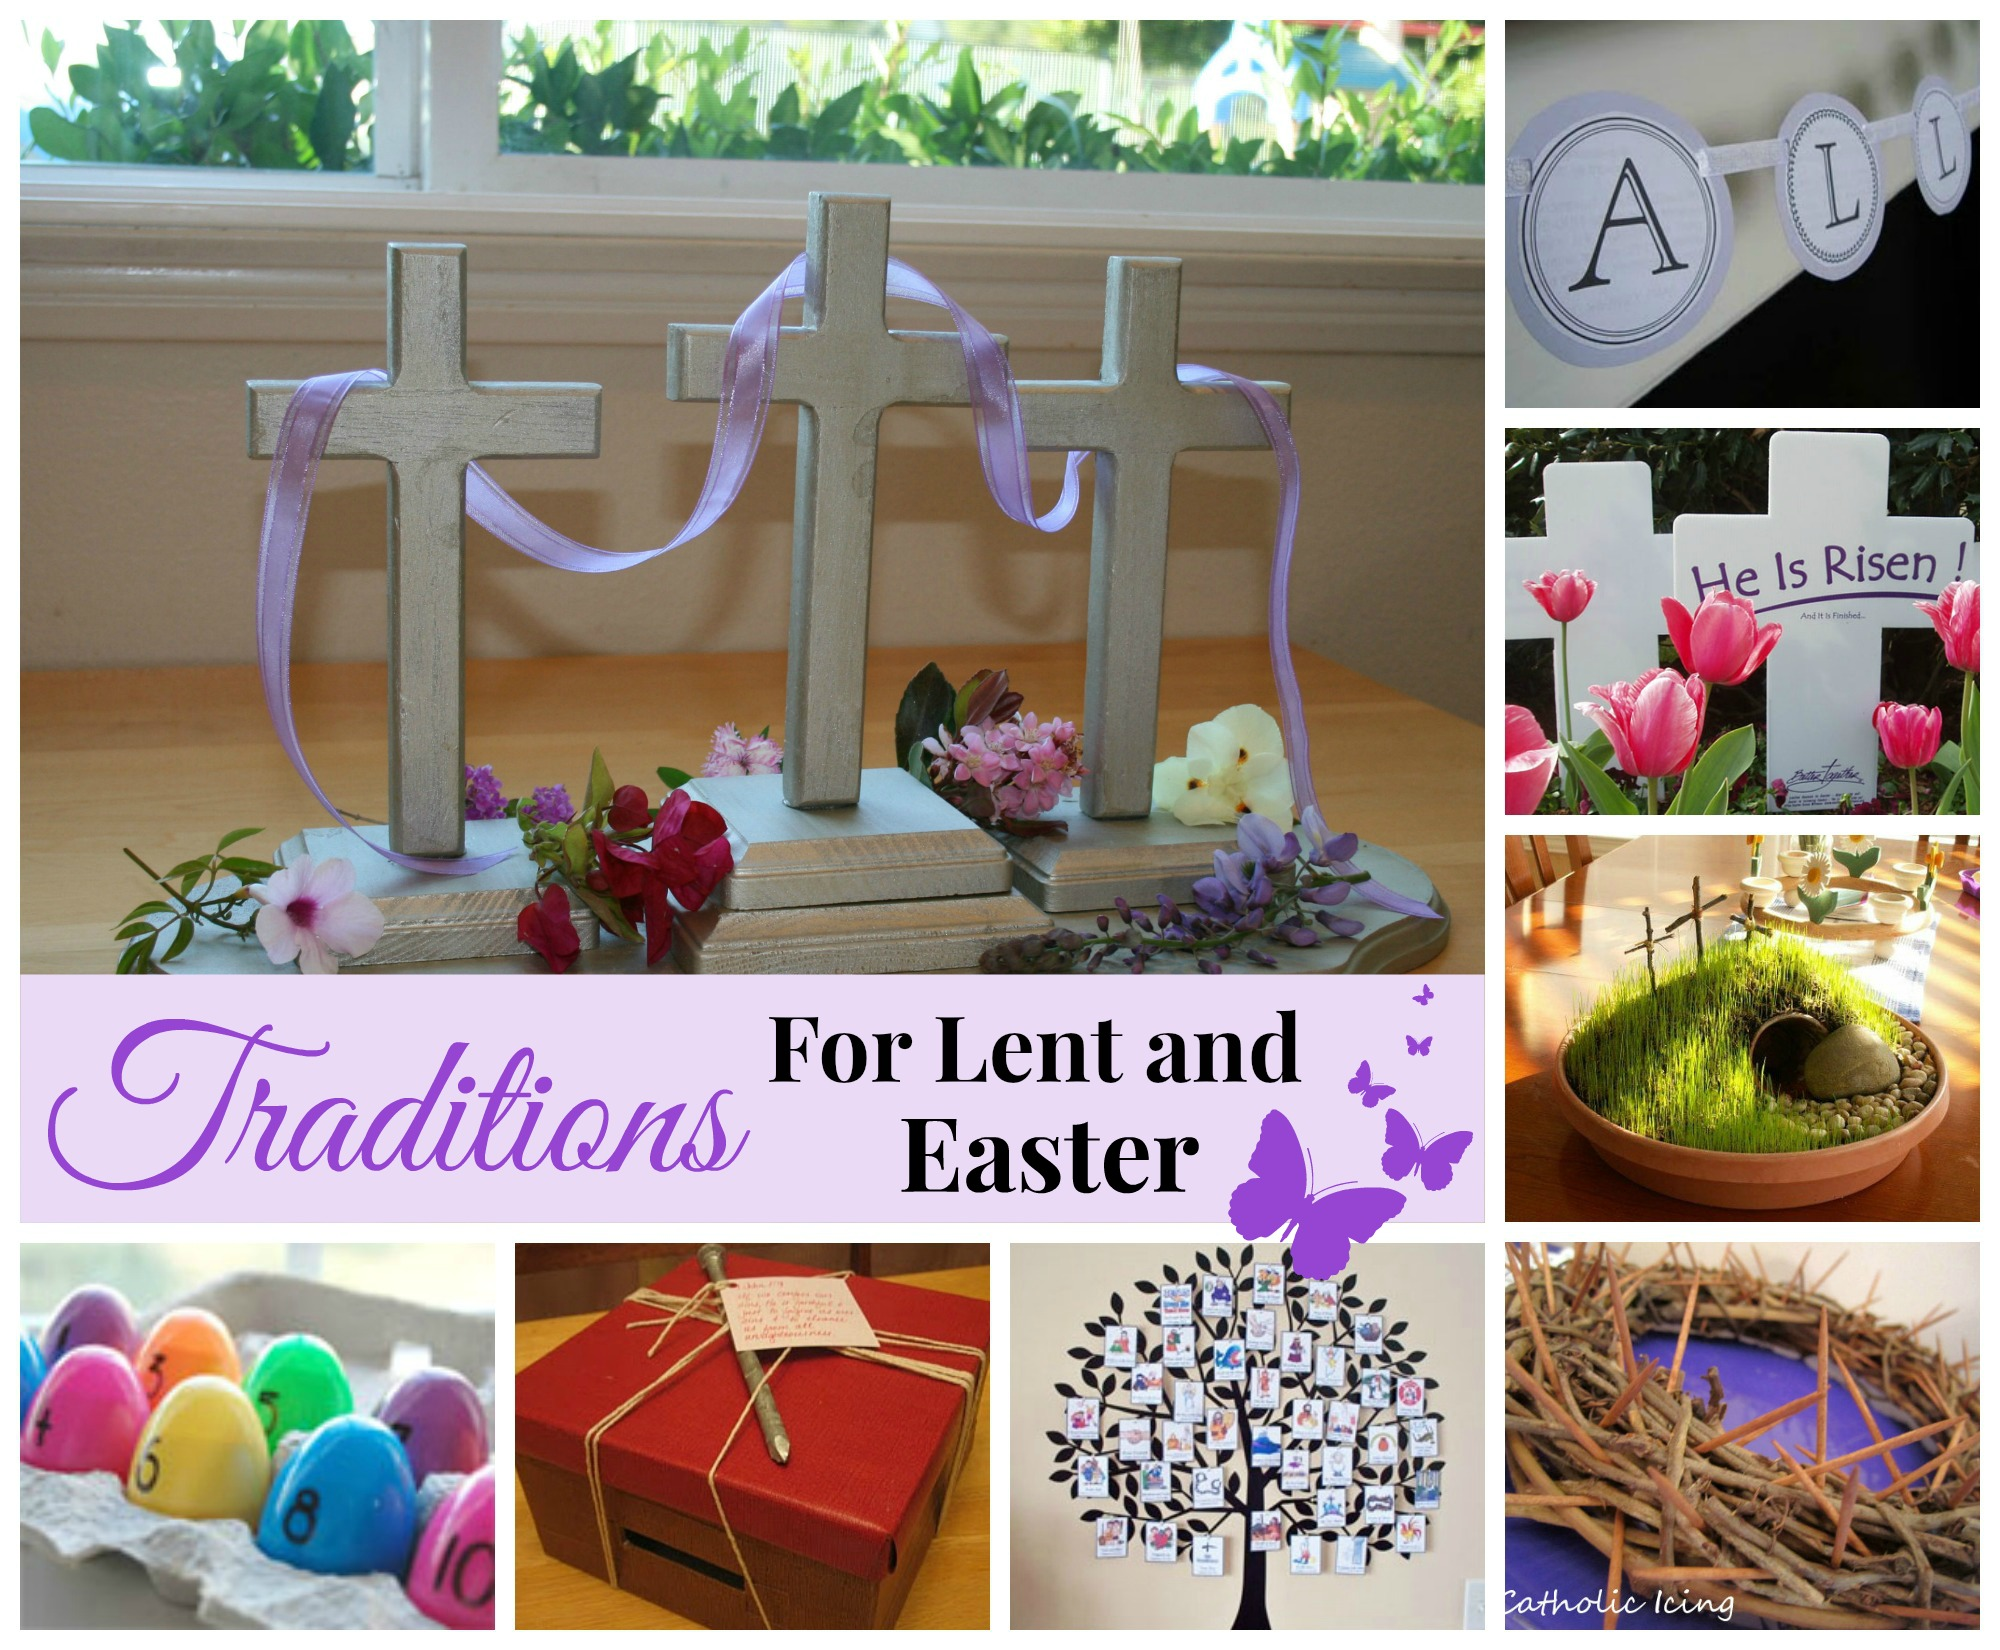 Lent and Easter Traditions | Celebrating Holidays